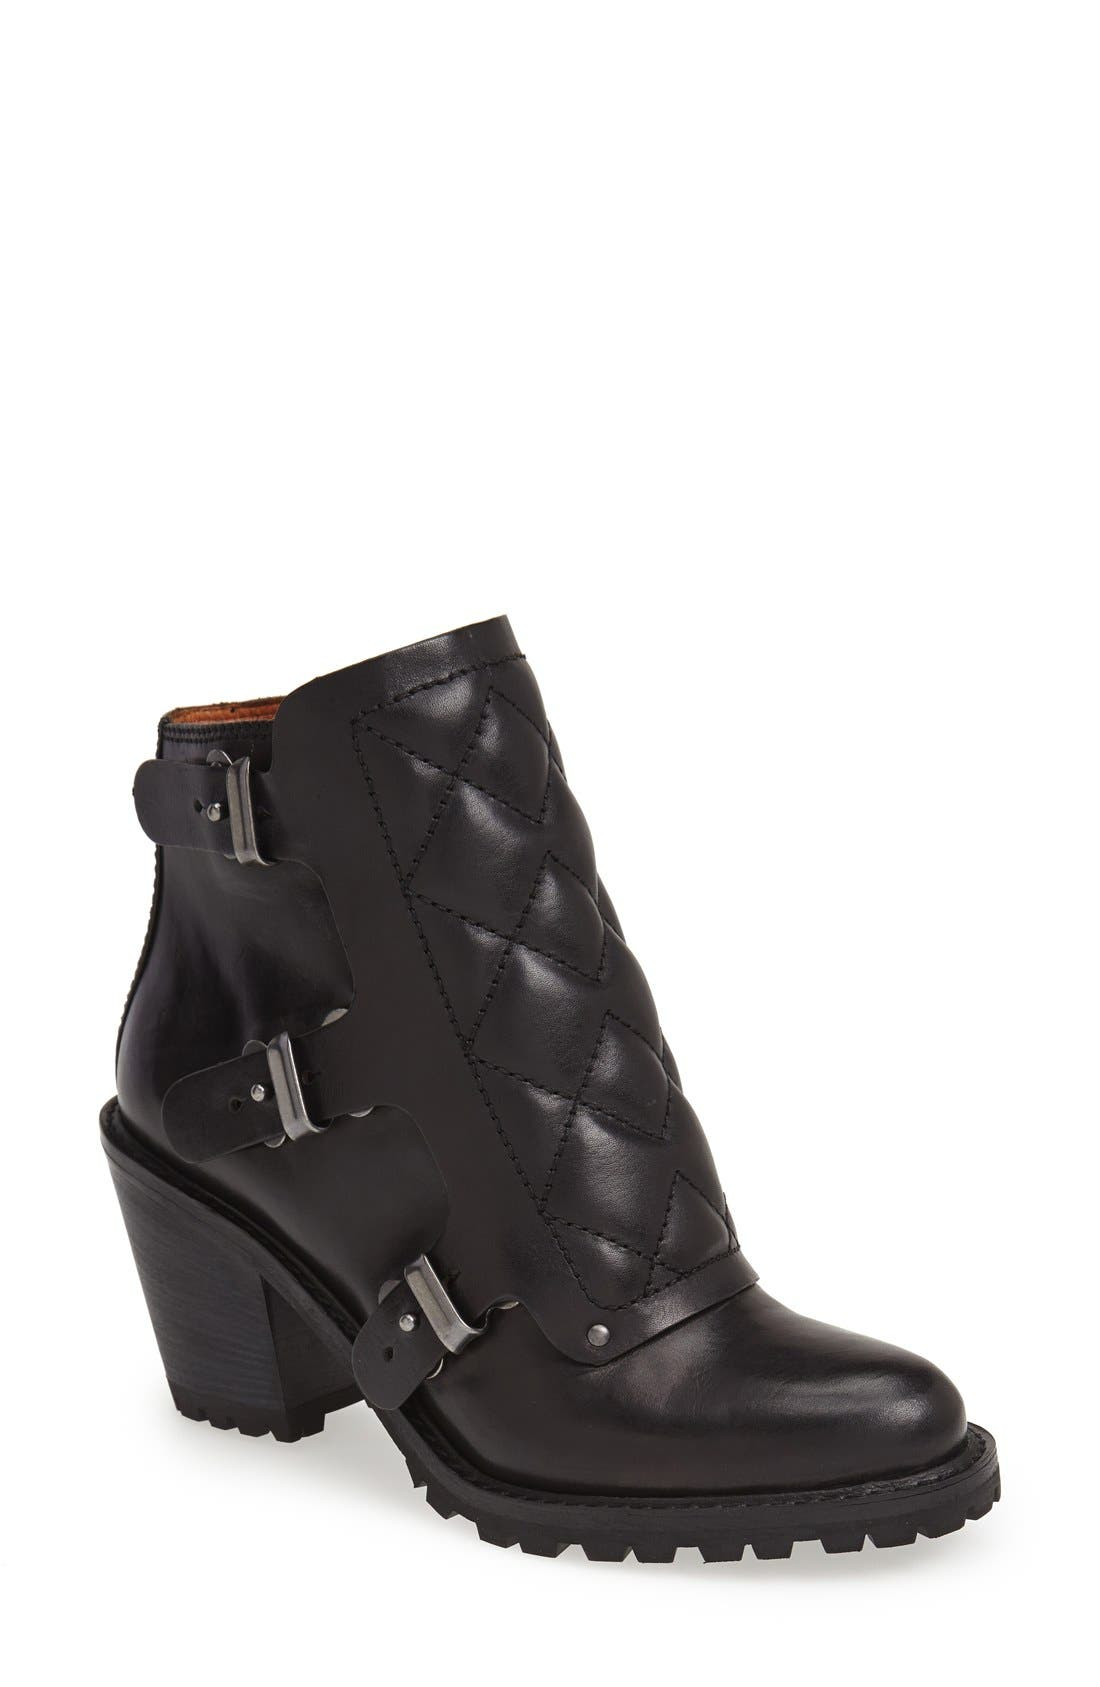 MARC BY MARC JACOBS Ankle Boot, Main, color, 001